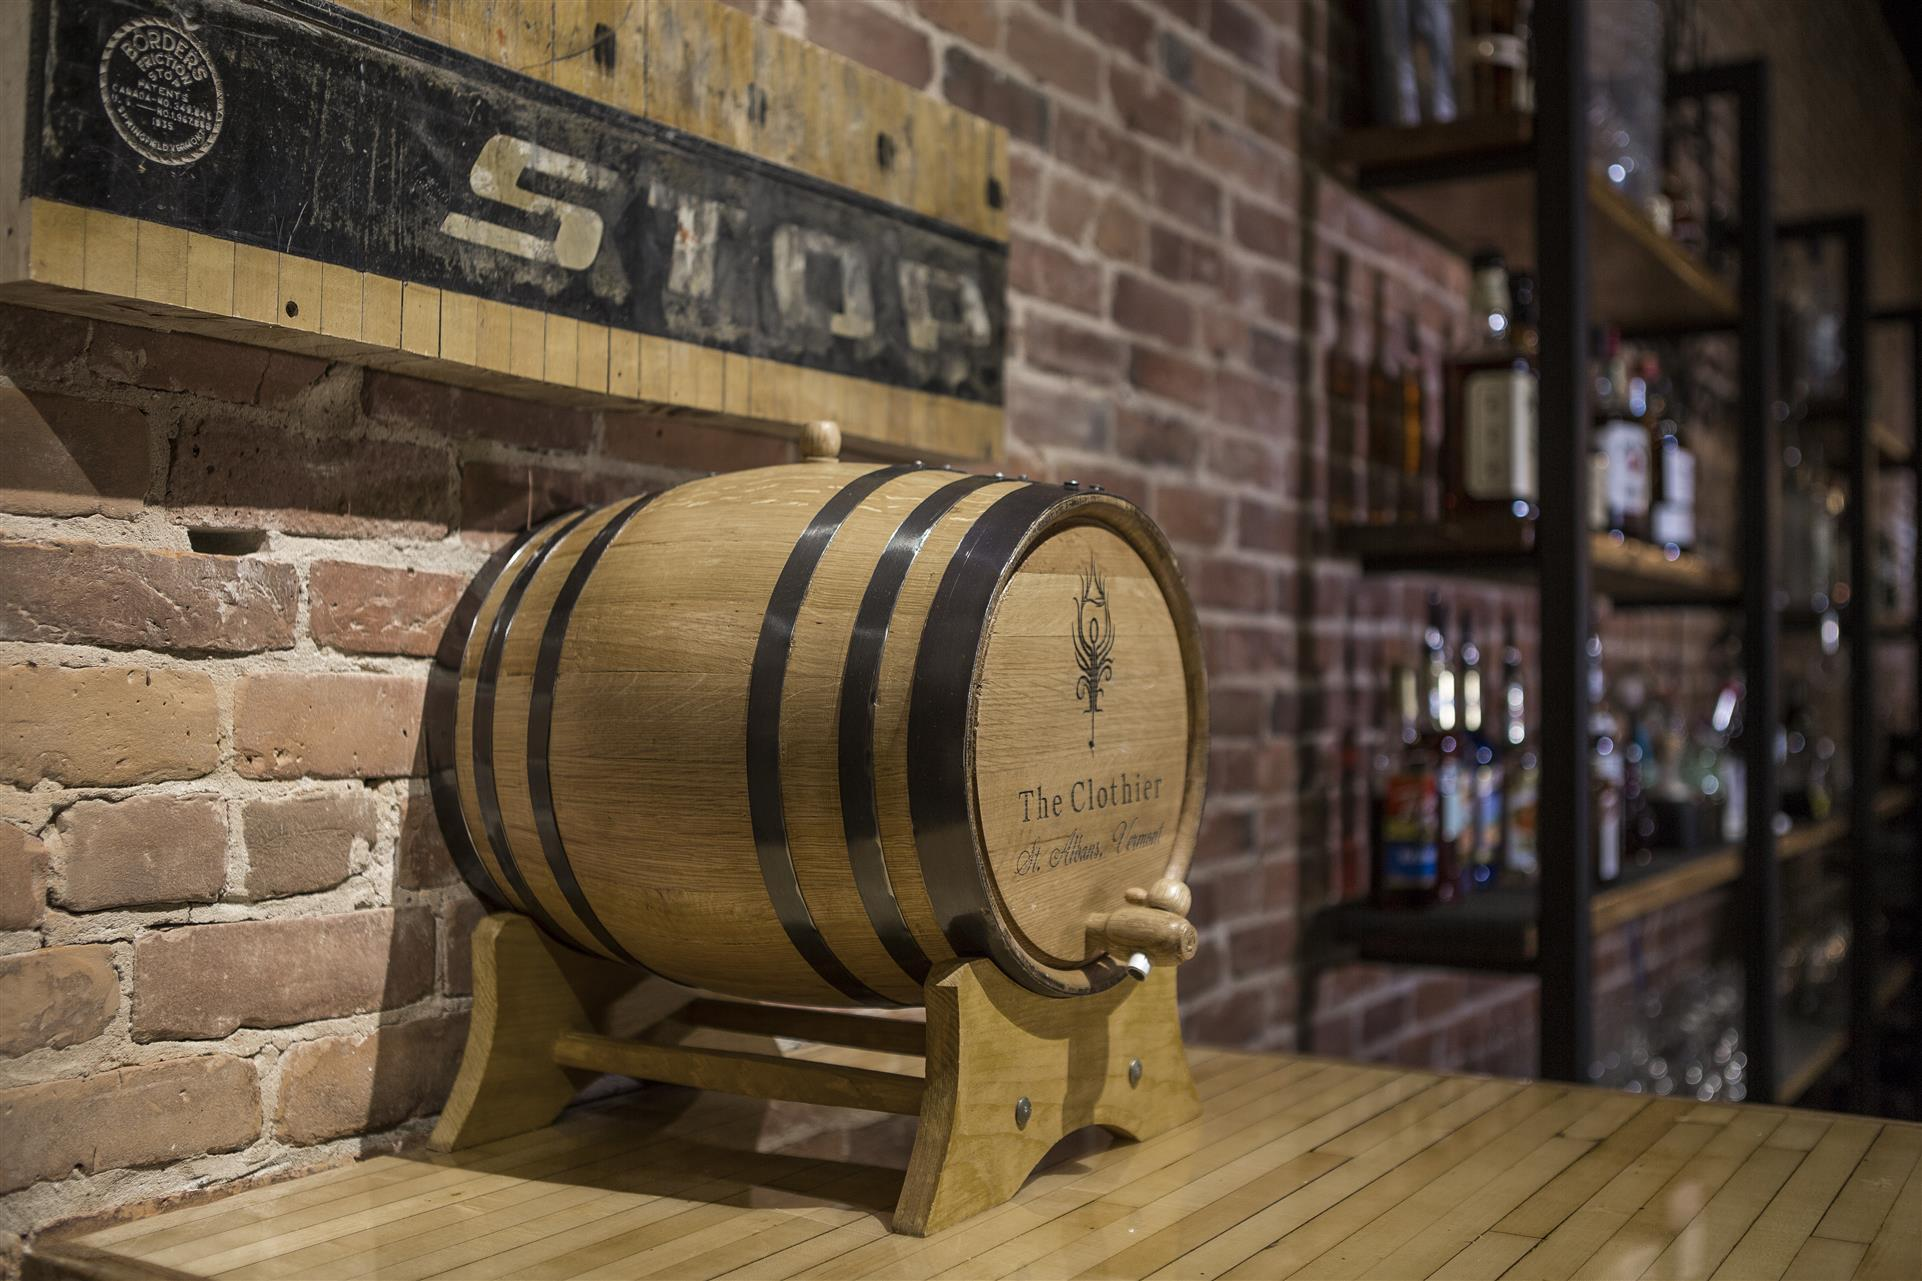 a wooden beer keg